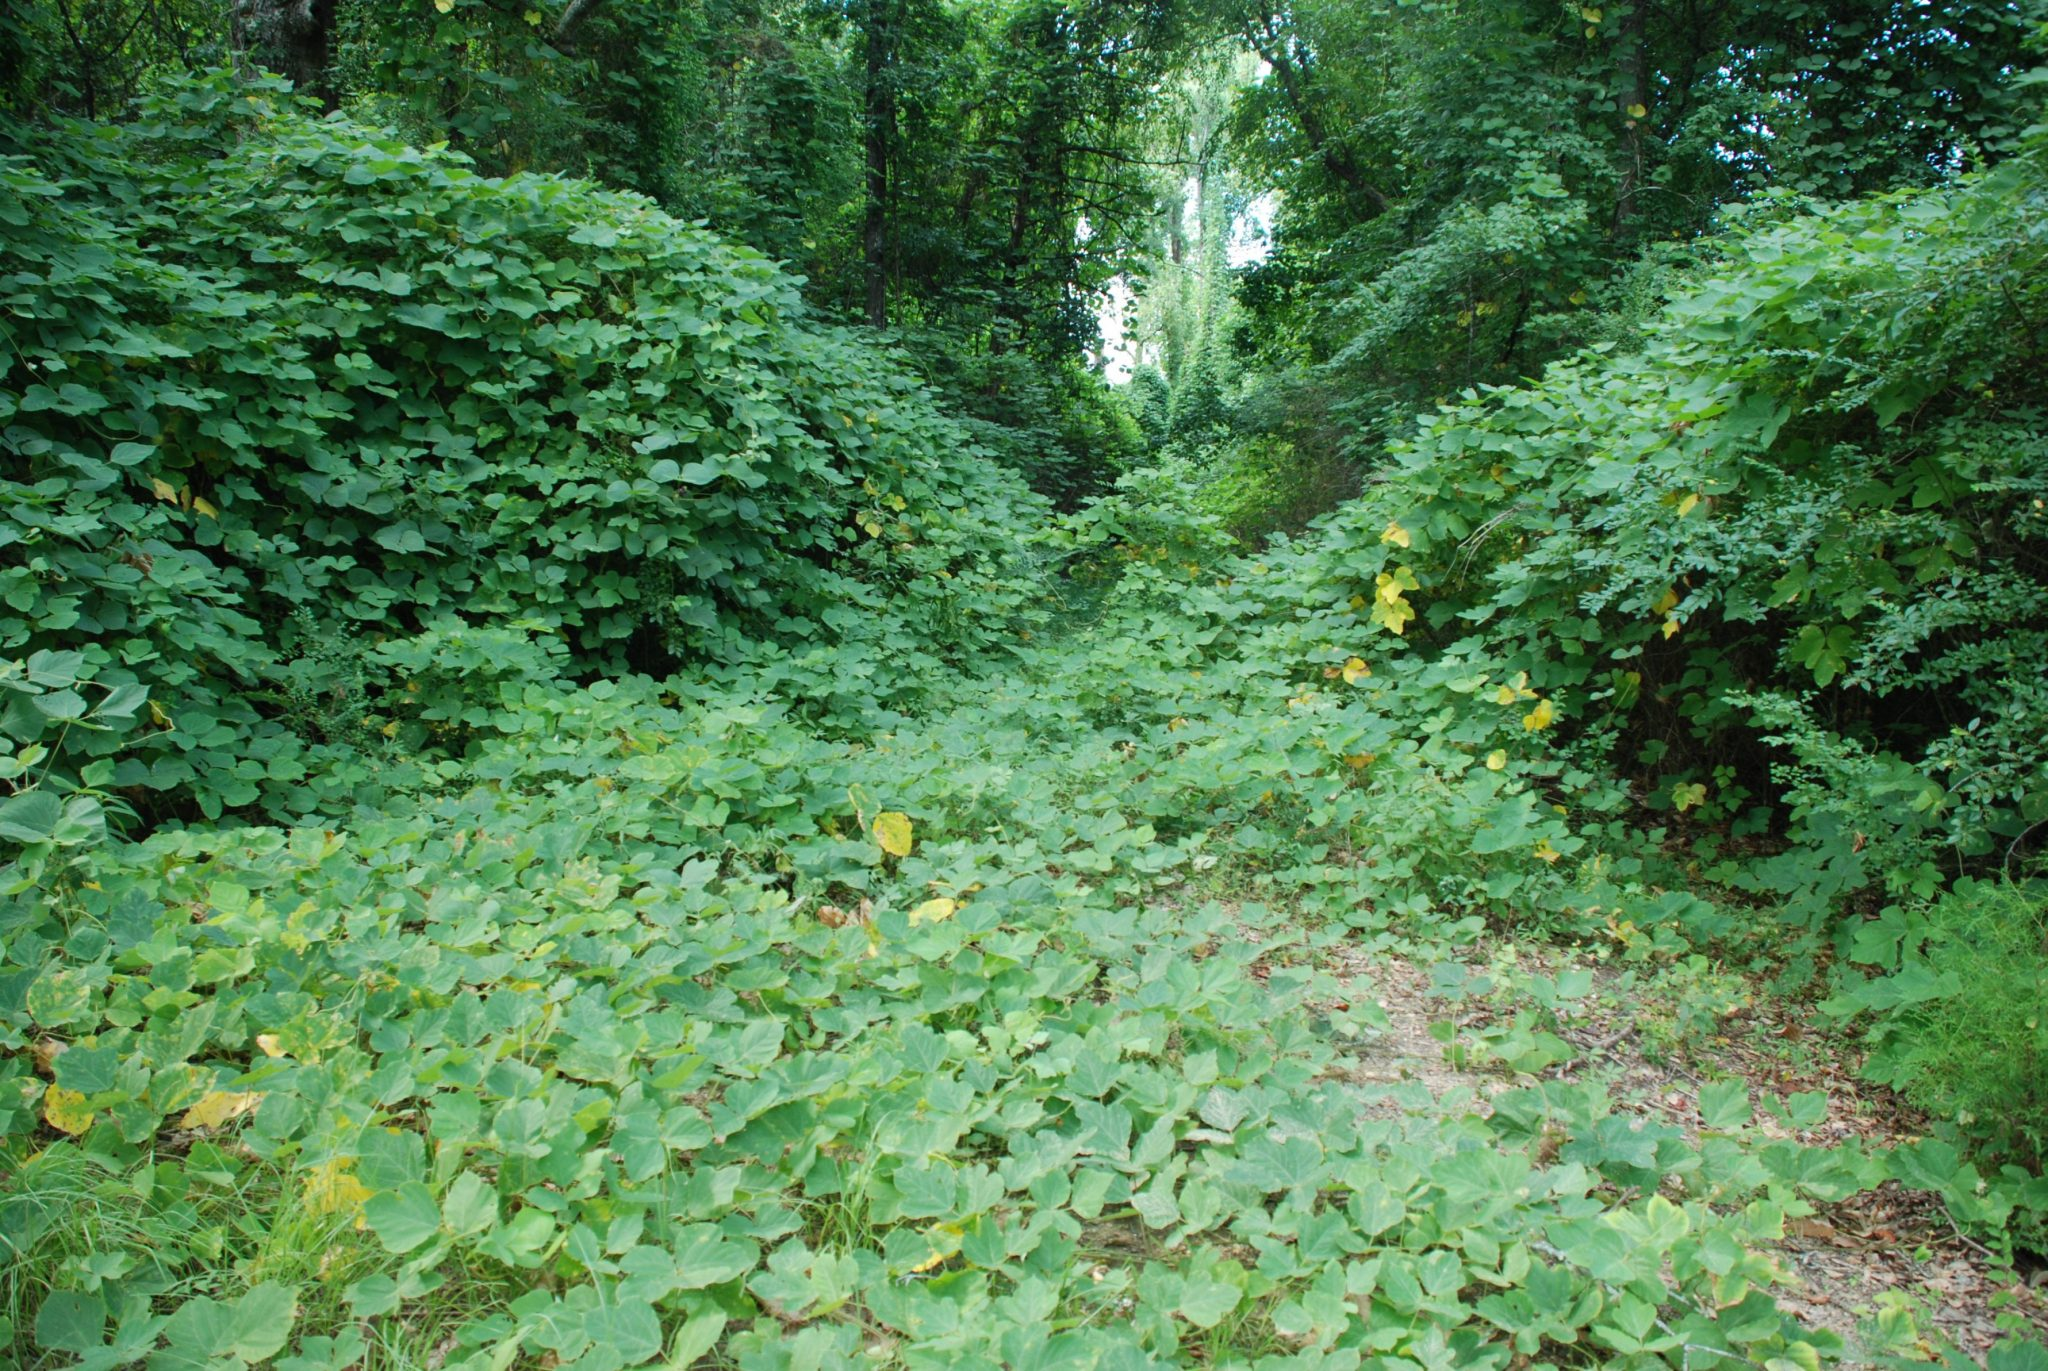 Kudzu infestations are often difficult to control.